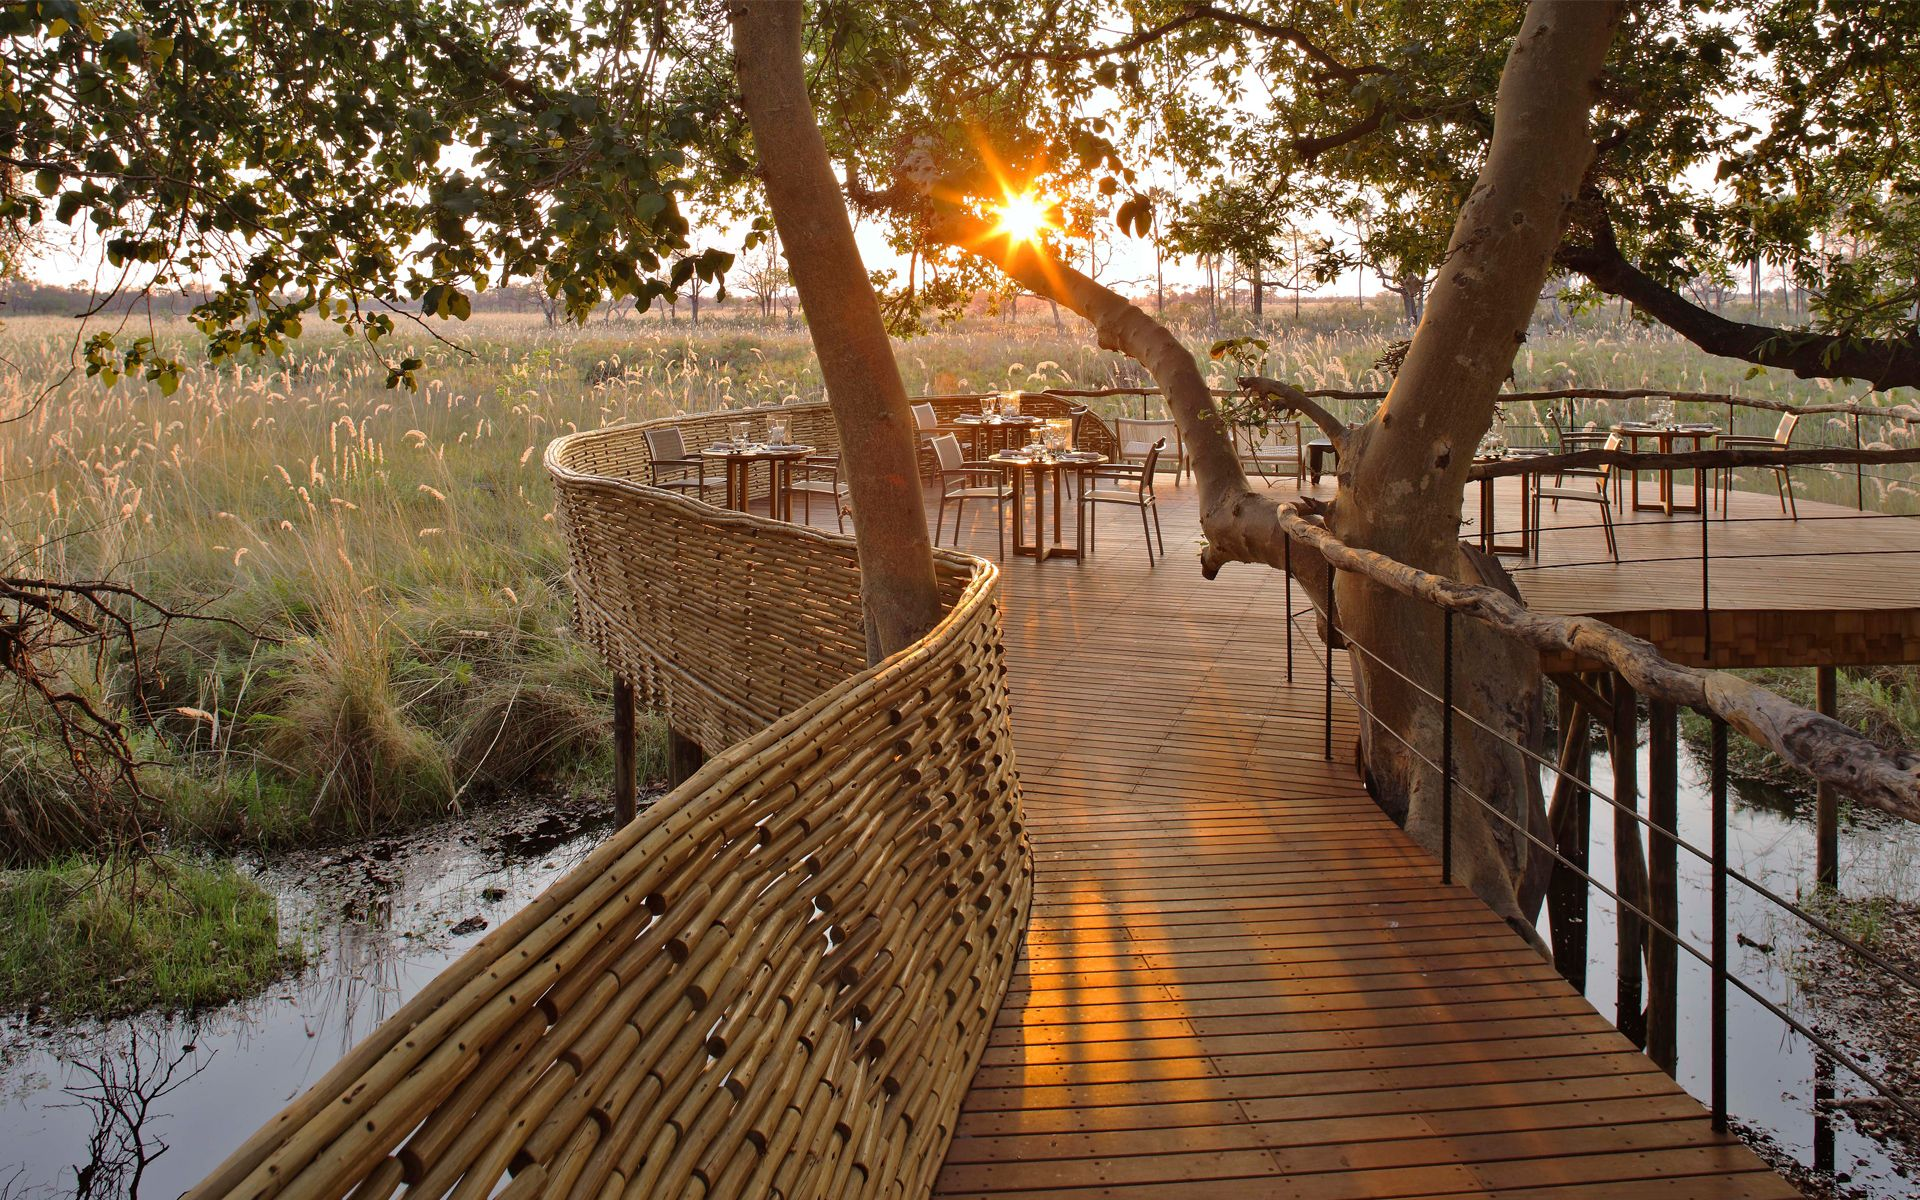 andbeyond_sandibe_okavango_safari_lodge_10